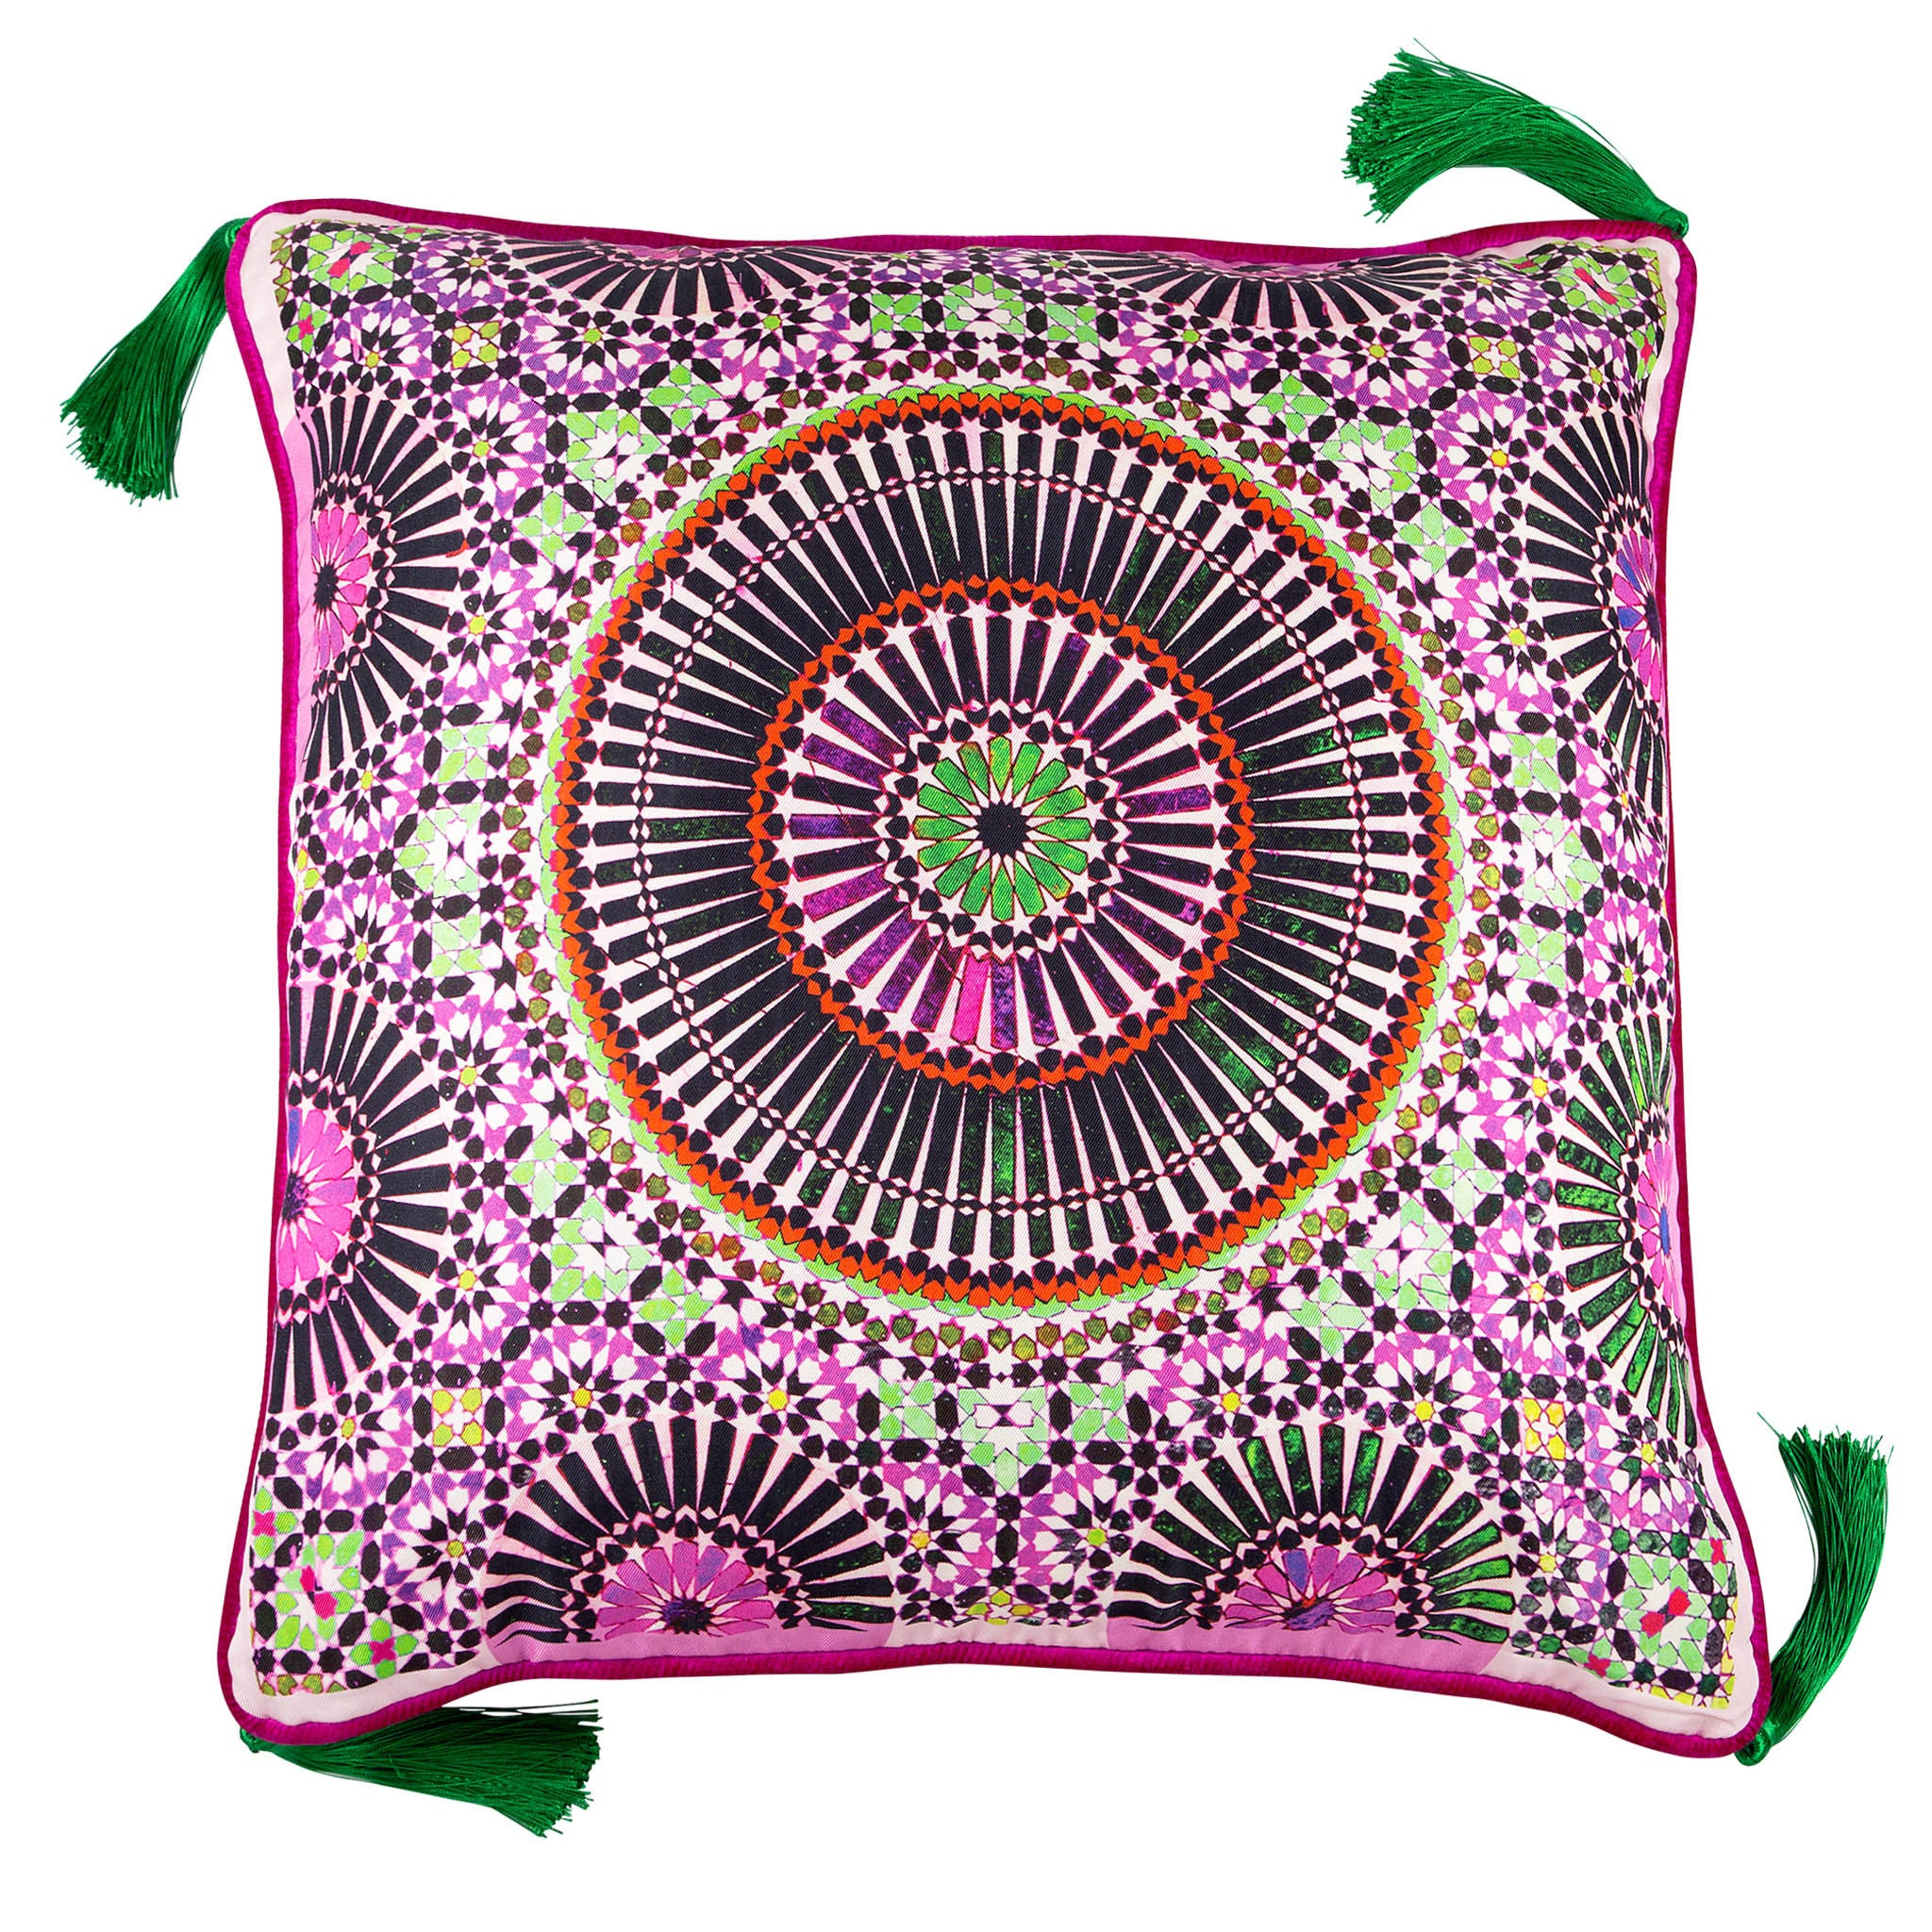 Silk twill and velvet zellige print Moroccan floor cushion - Bivain - 1